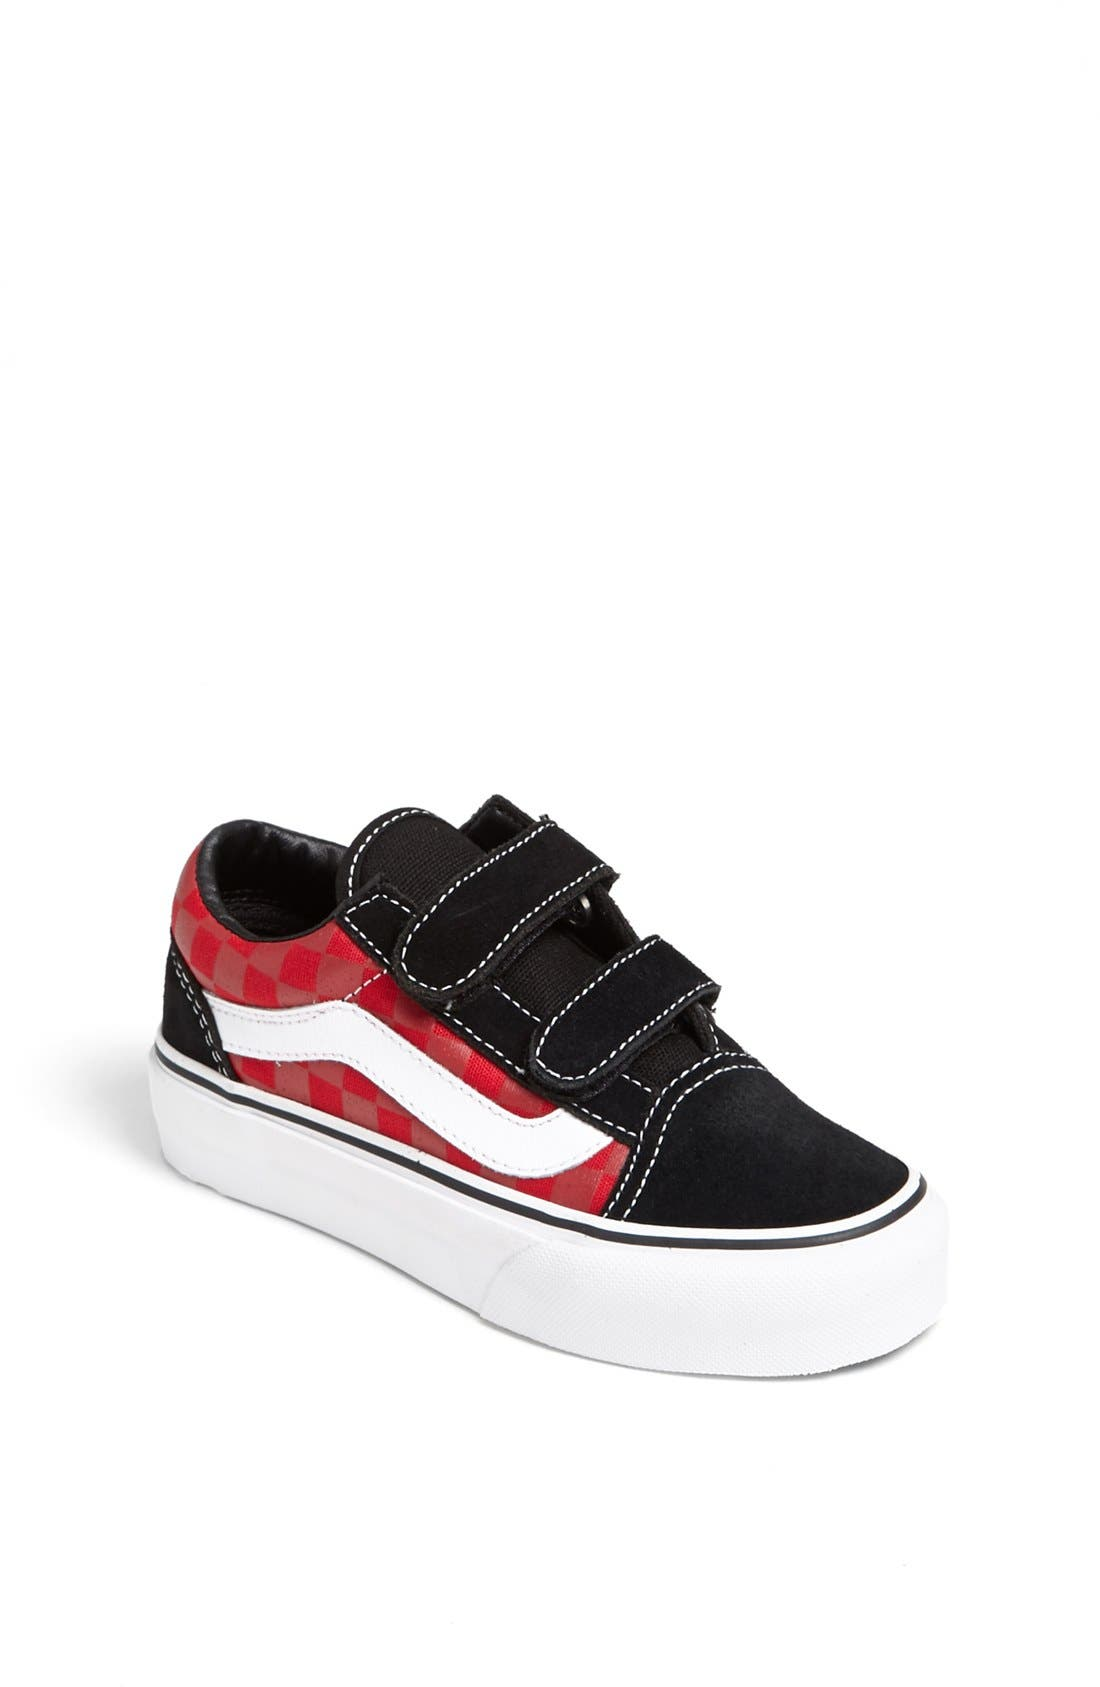 Main Image - Vans 'Old Skool' Sneaker (Toddler)